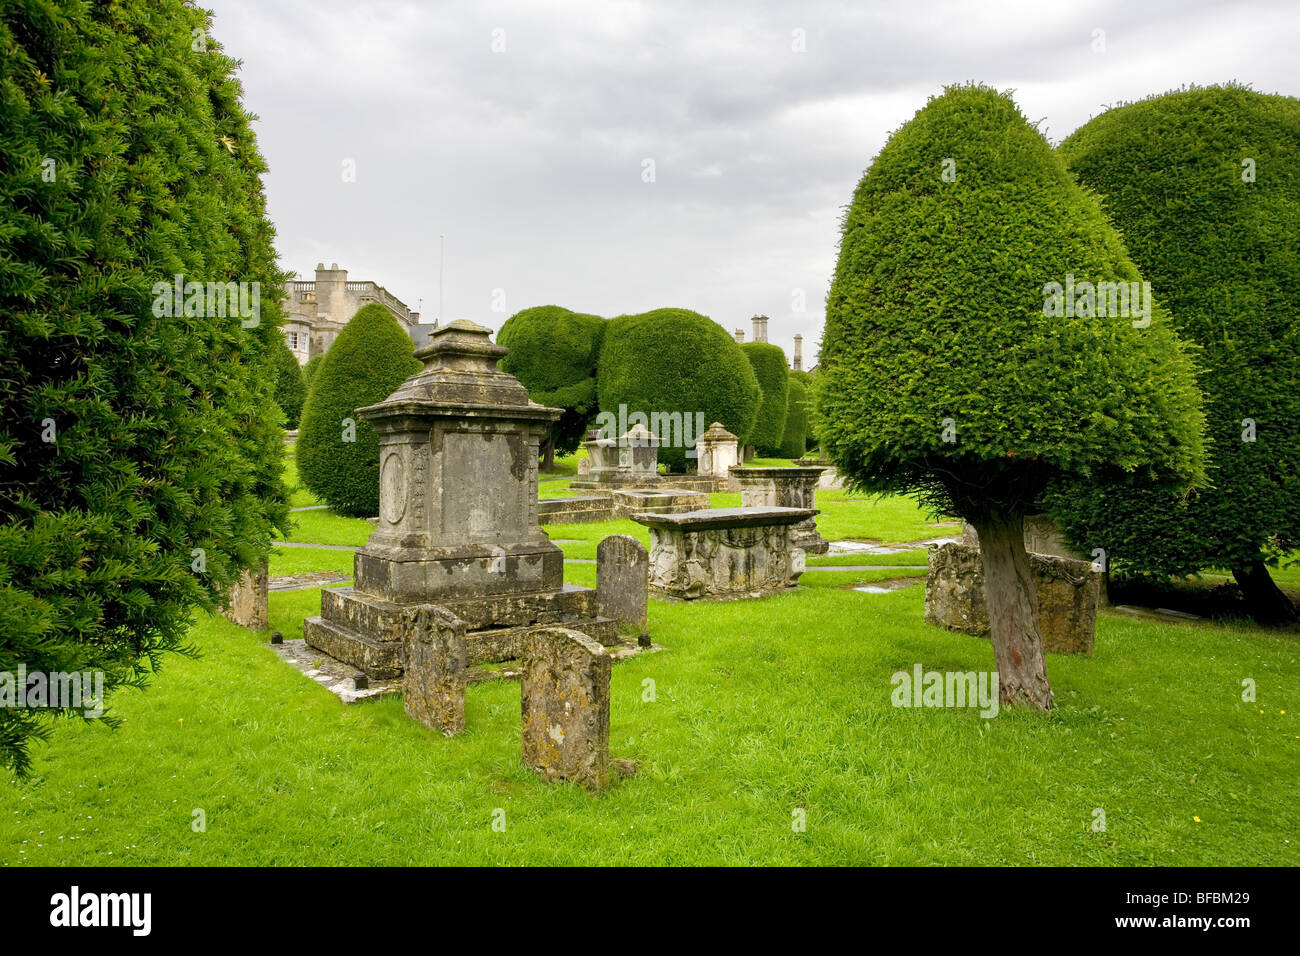 Tombs and yew trees in churchyard of St Mary's Church Painswick - Stock Image